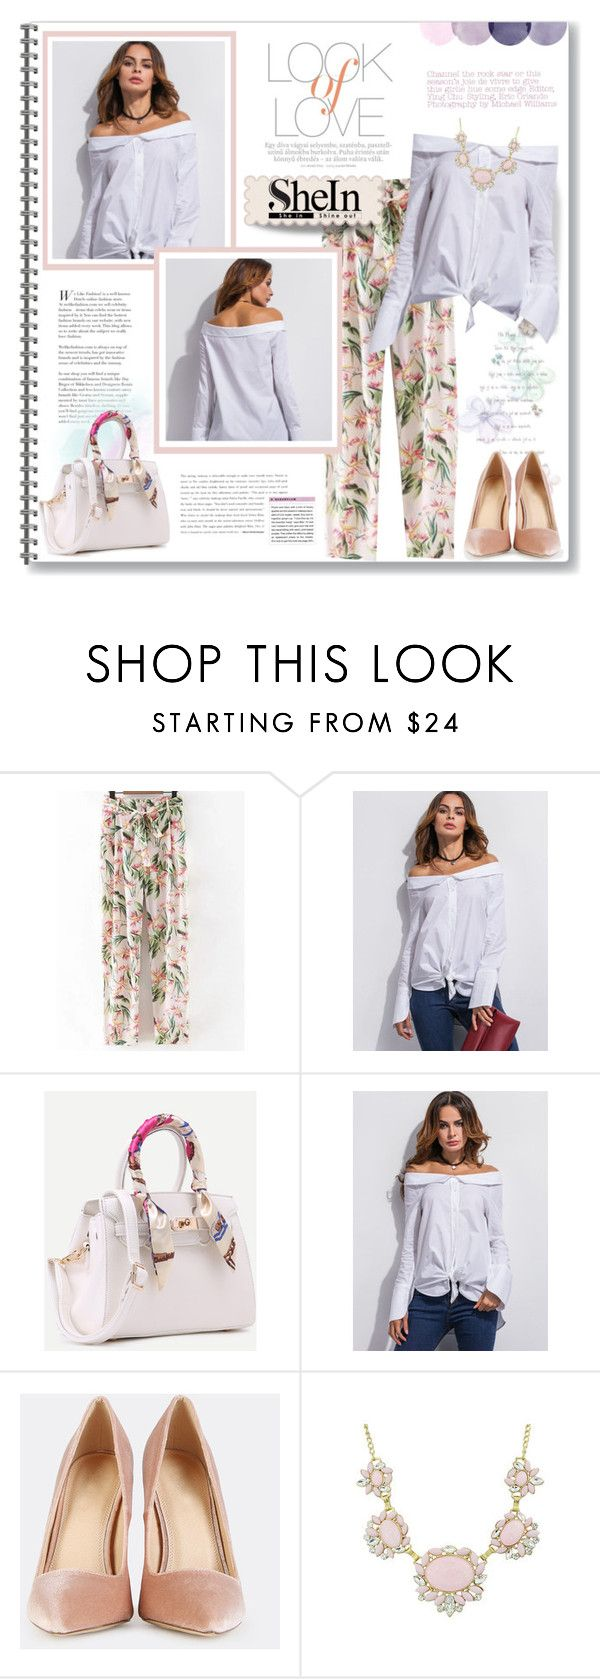 """""""Long Sleeve Shirt ♥ Shein"""" by viebunny ❤ liked on Polyvore featuring Vince, floral, pastel, pants, longsleeve and shein"""